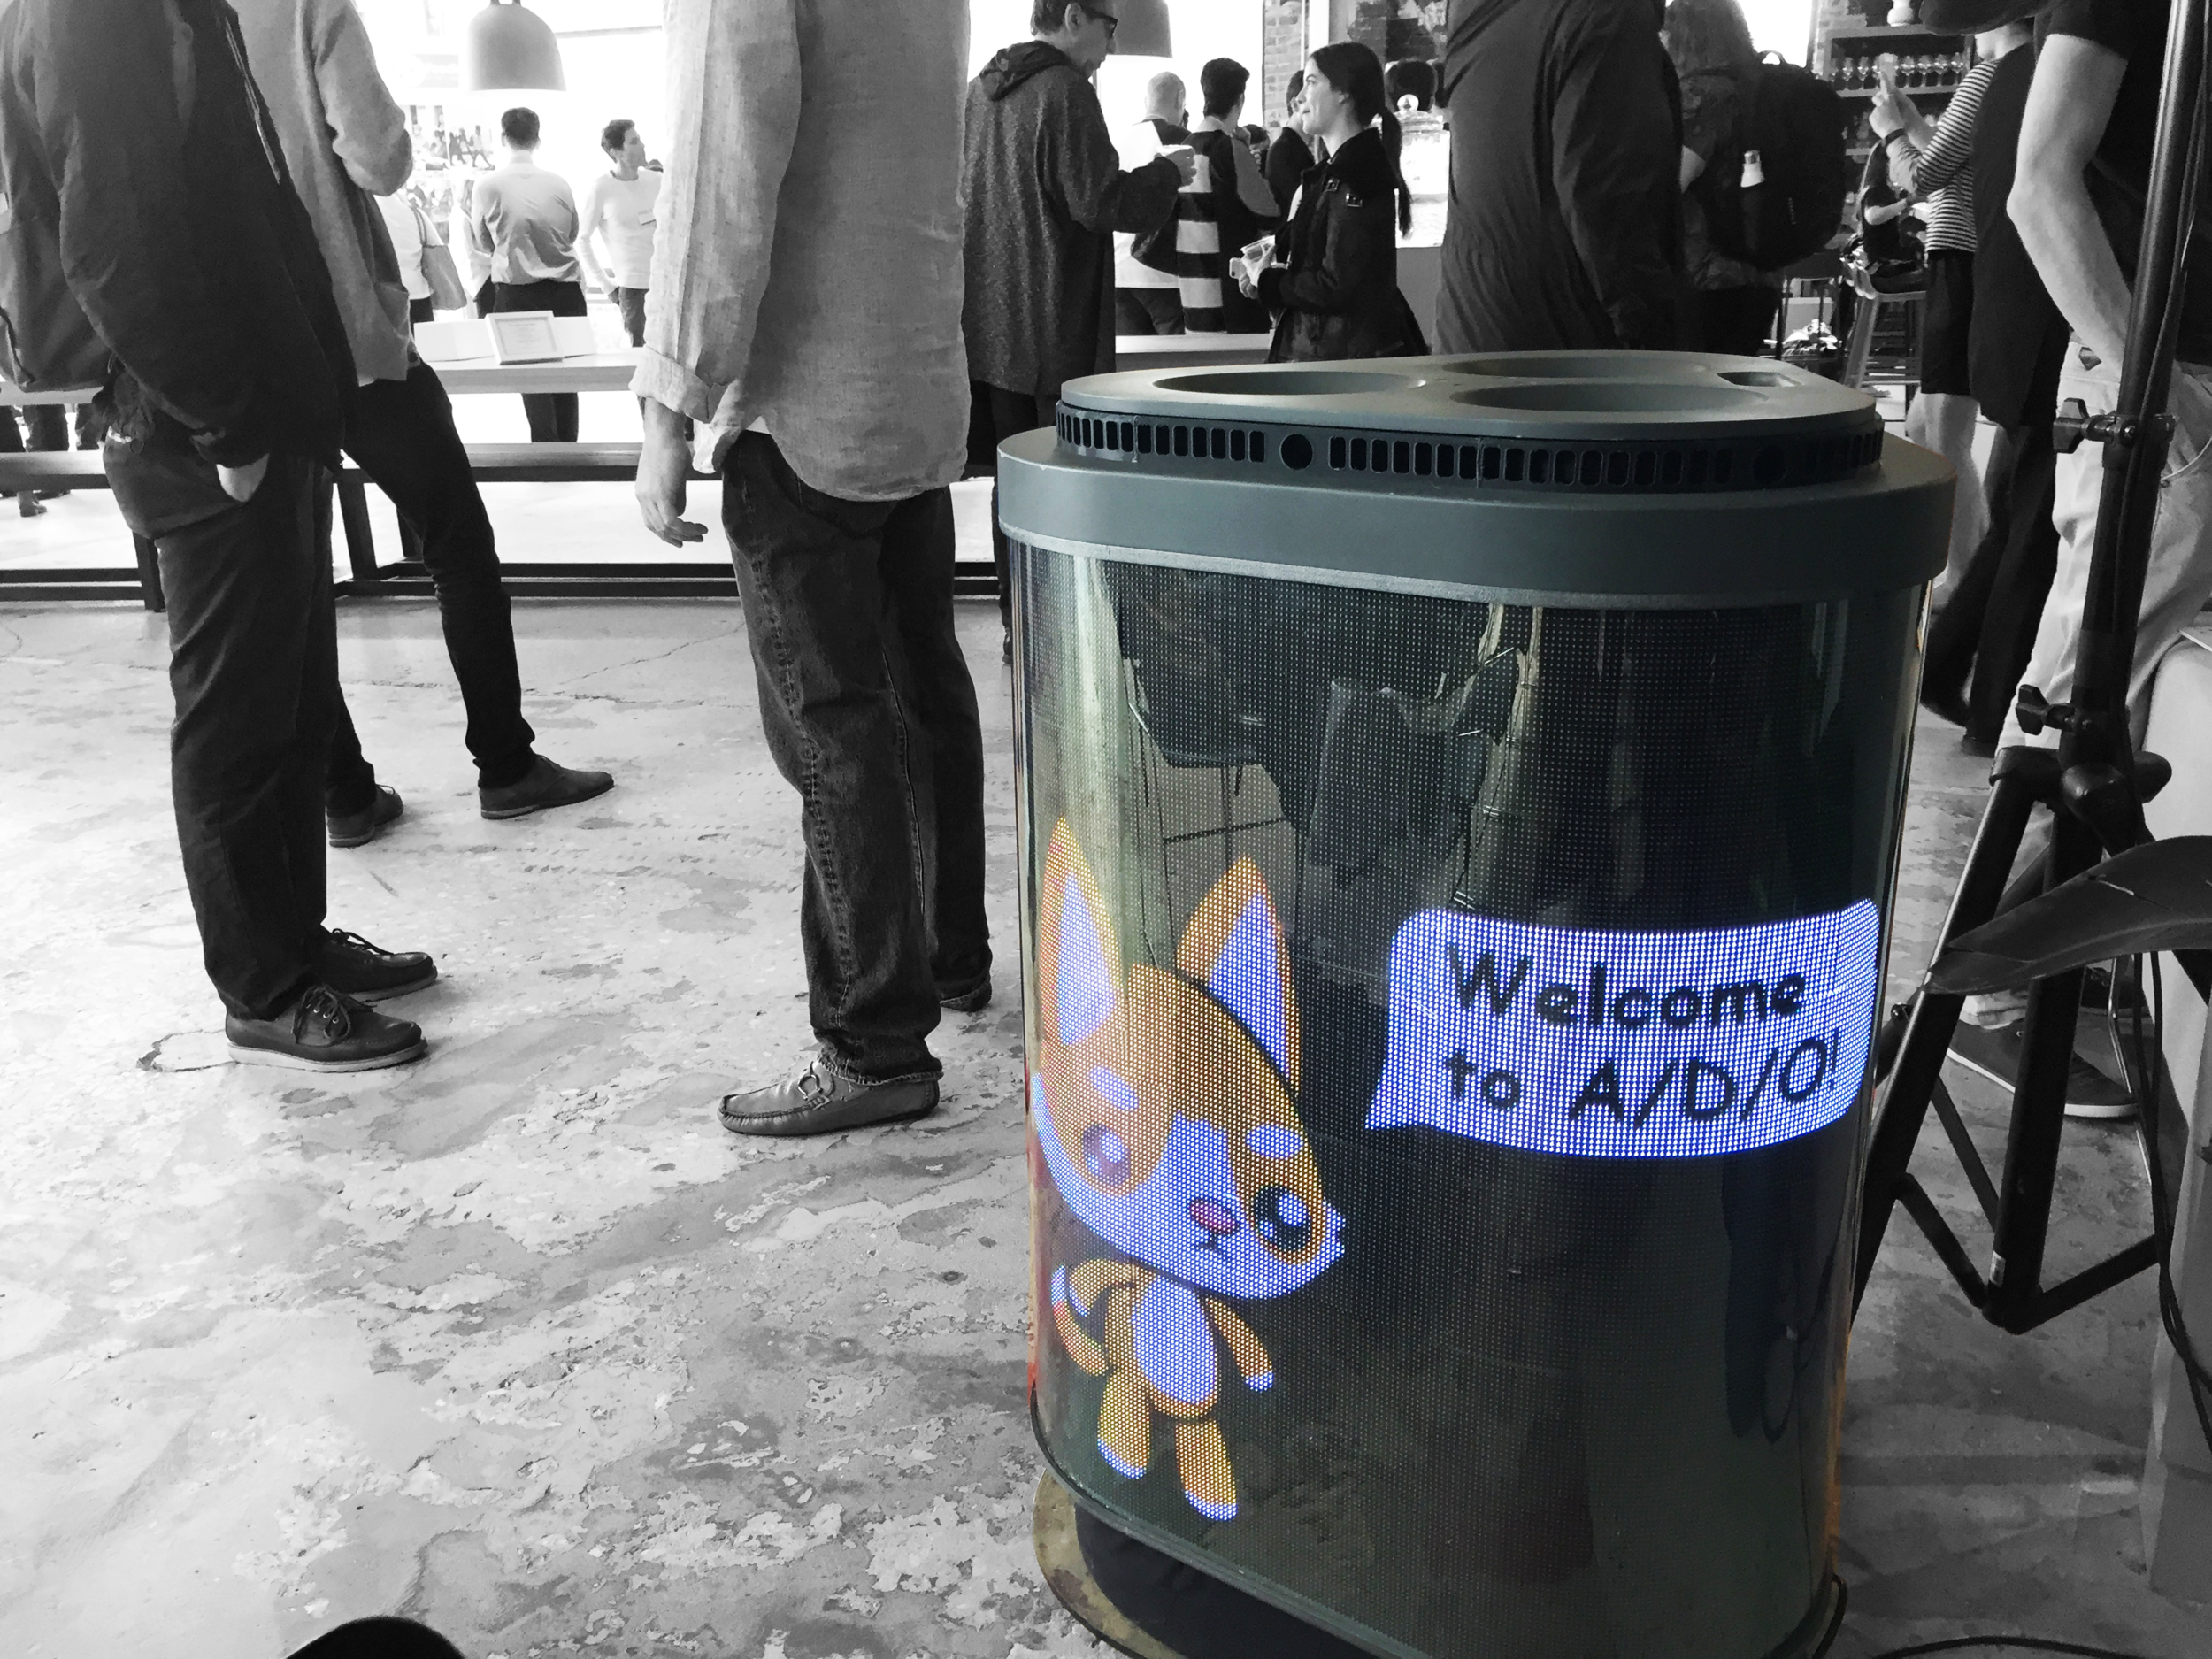 TetraBIN, a smart and interactive waste receptacle, was deployed at the Food-X Demo day in A/D/O.